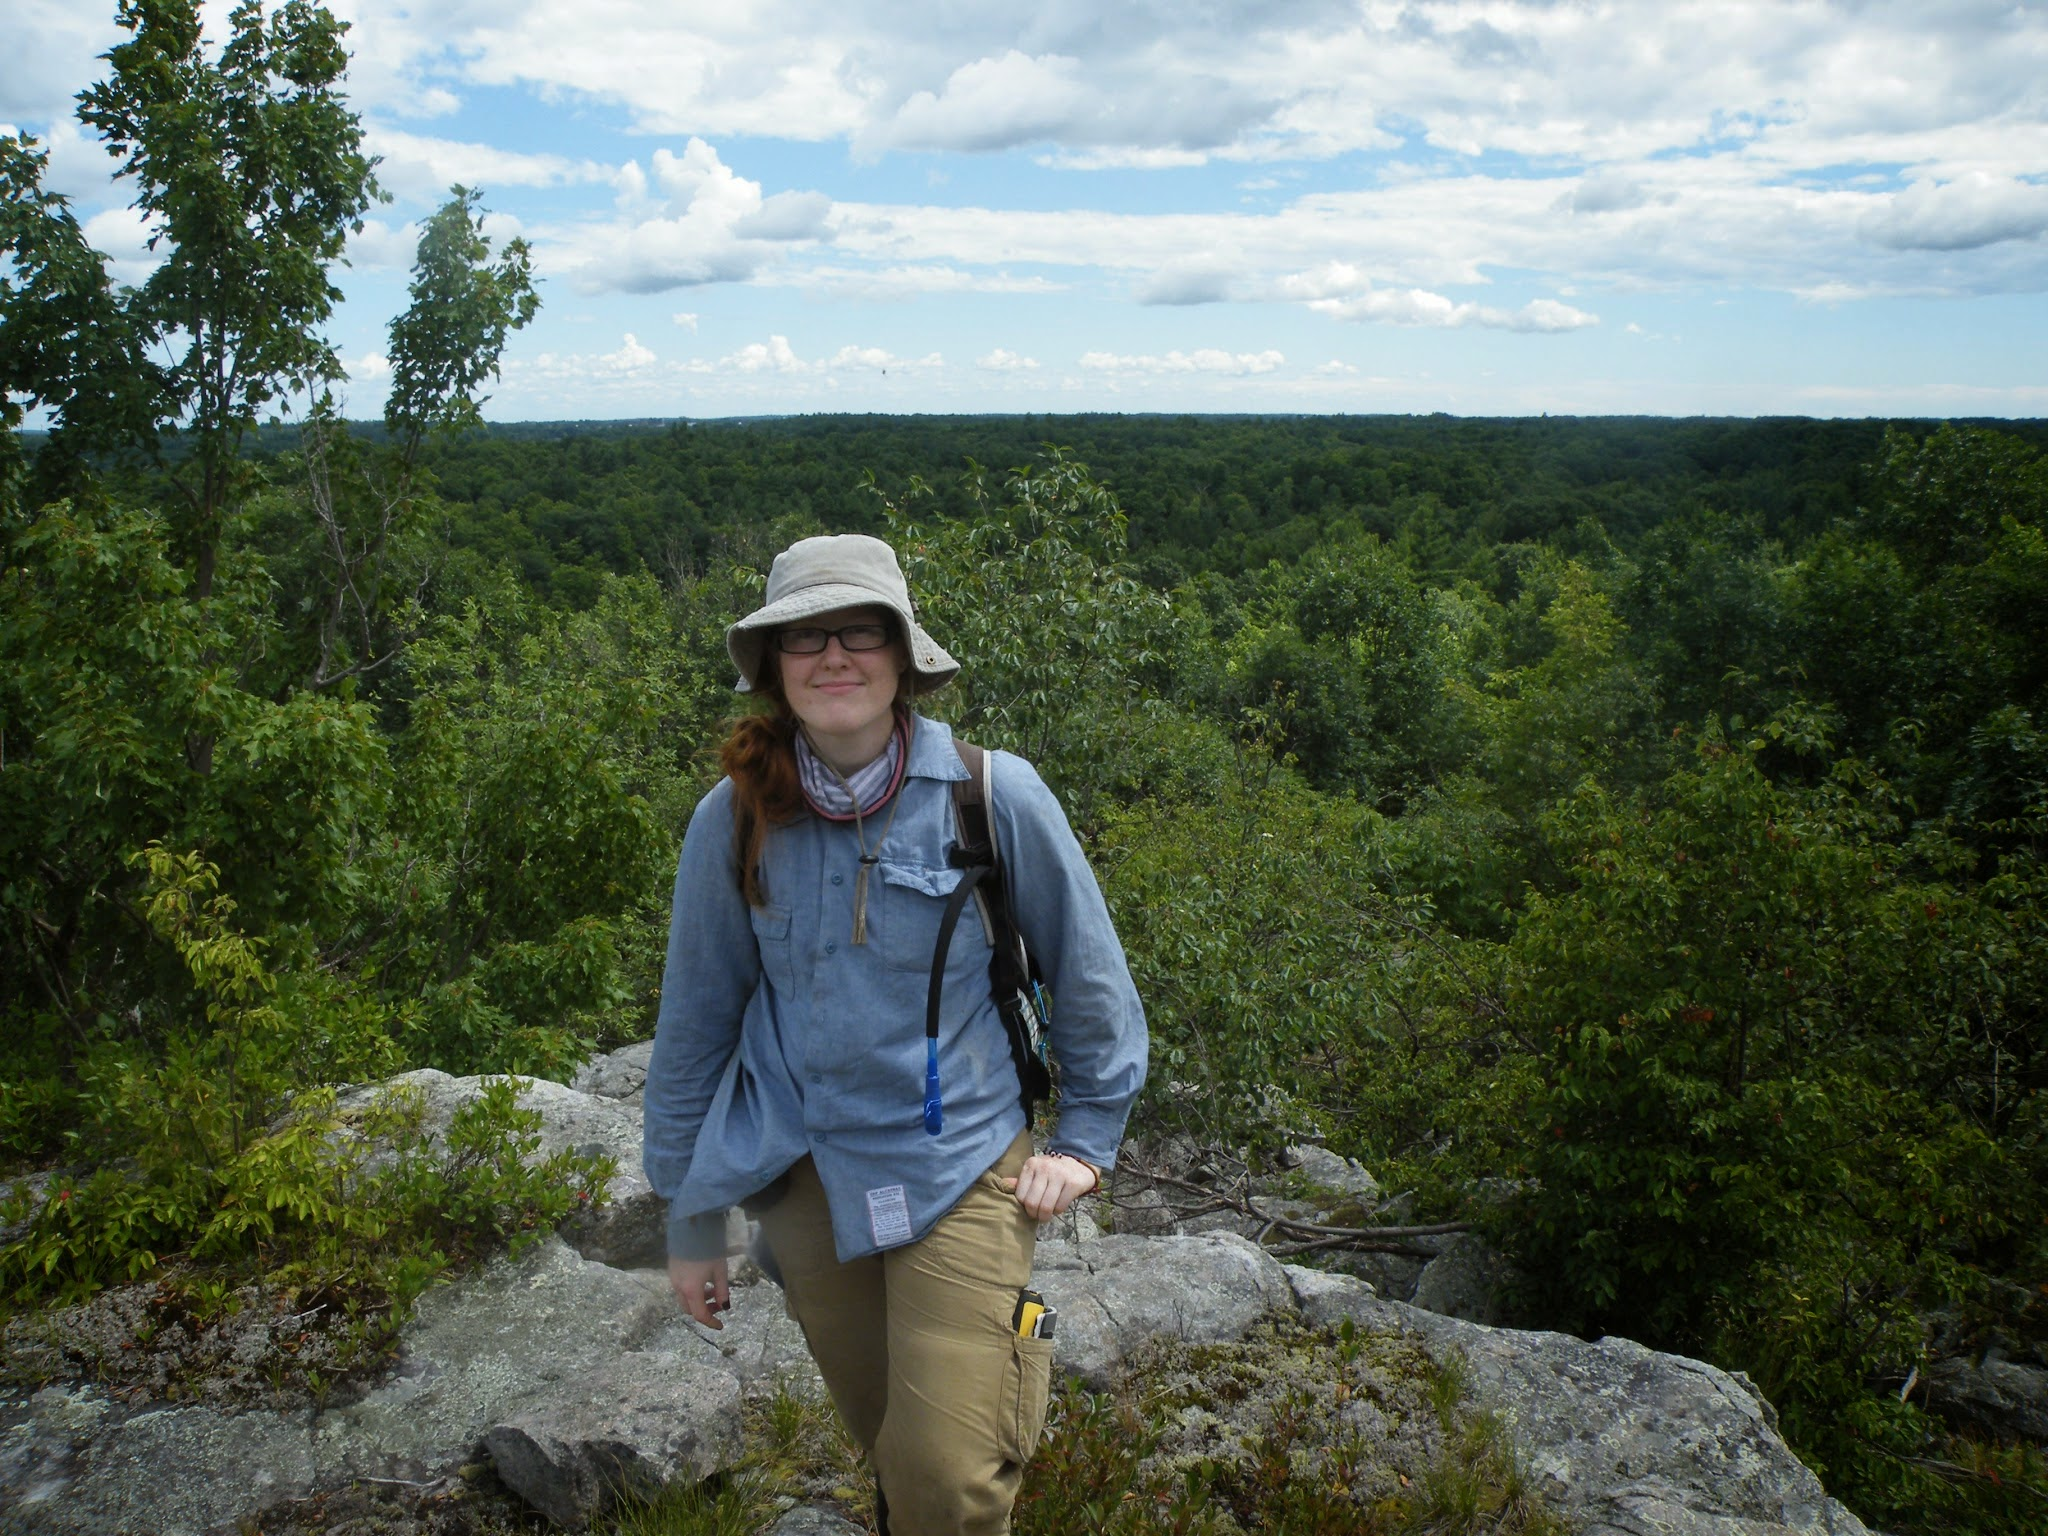 A young woman in field gear stands at a lookout point with a large forested area in the background